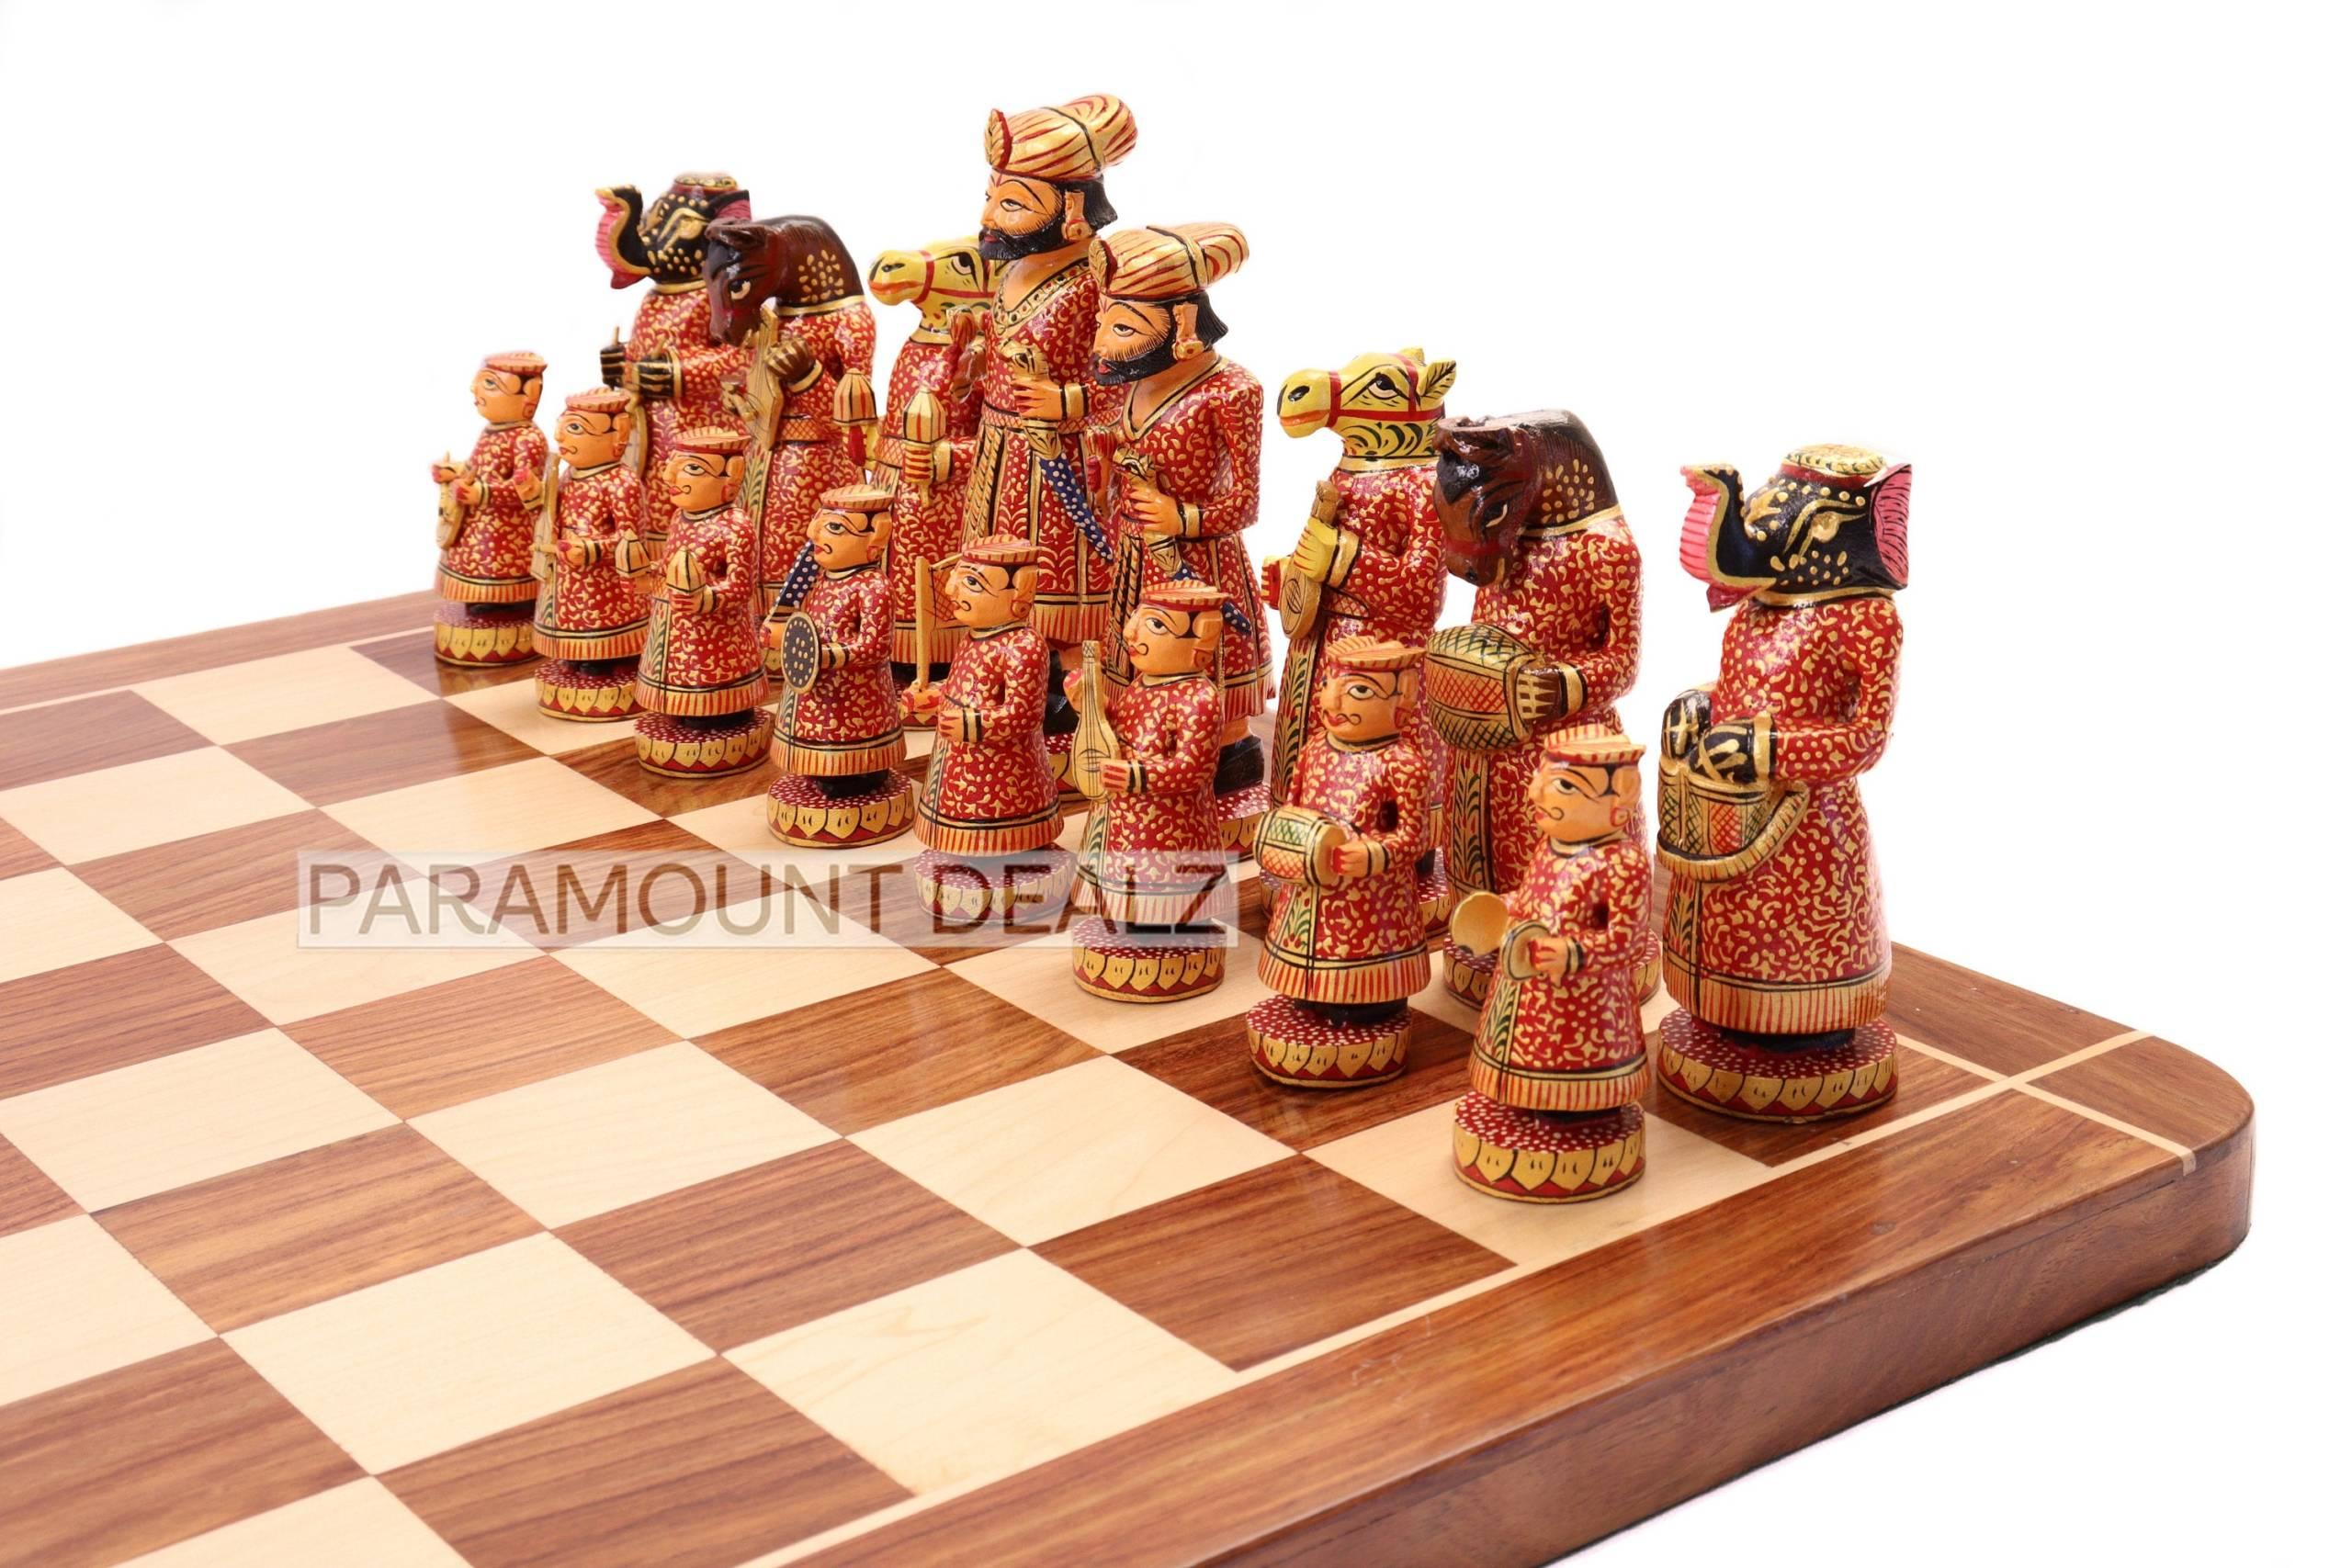 """WOODEN INDIAN CHESS 6"""" Musical Theme Wooden Chess Board with Chess Pieces and Chess Box - Golden Rosewood Handcrafted Chess Board Set"""